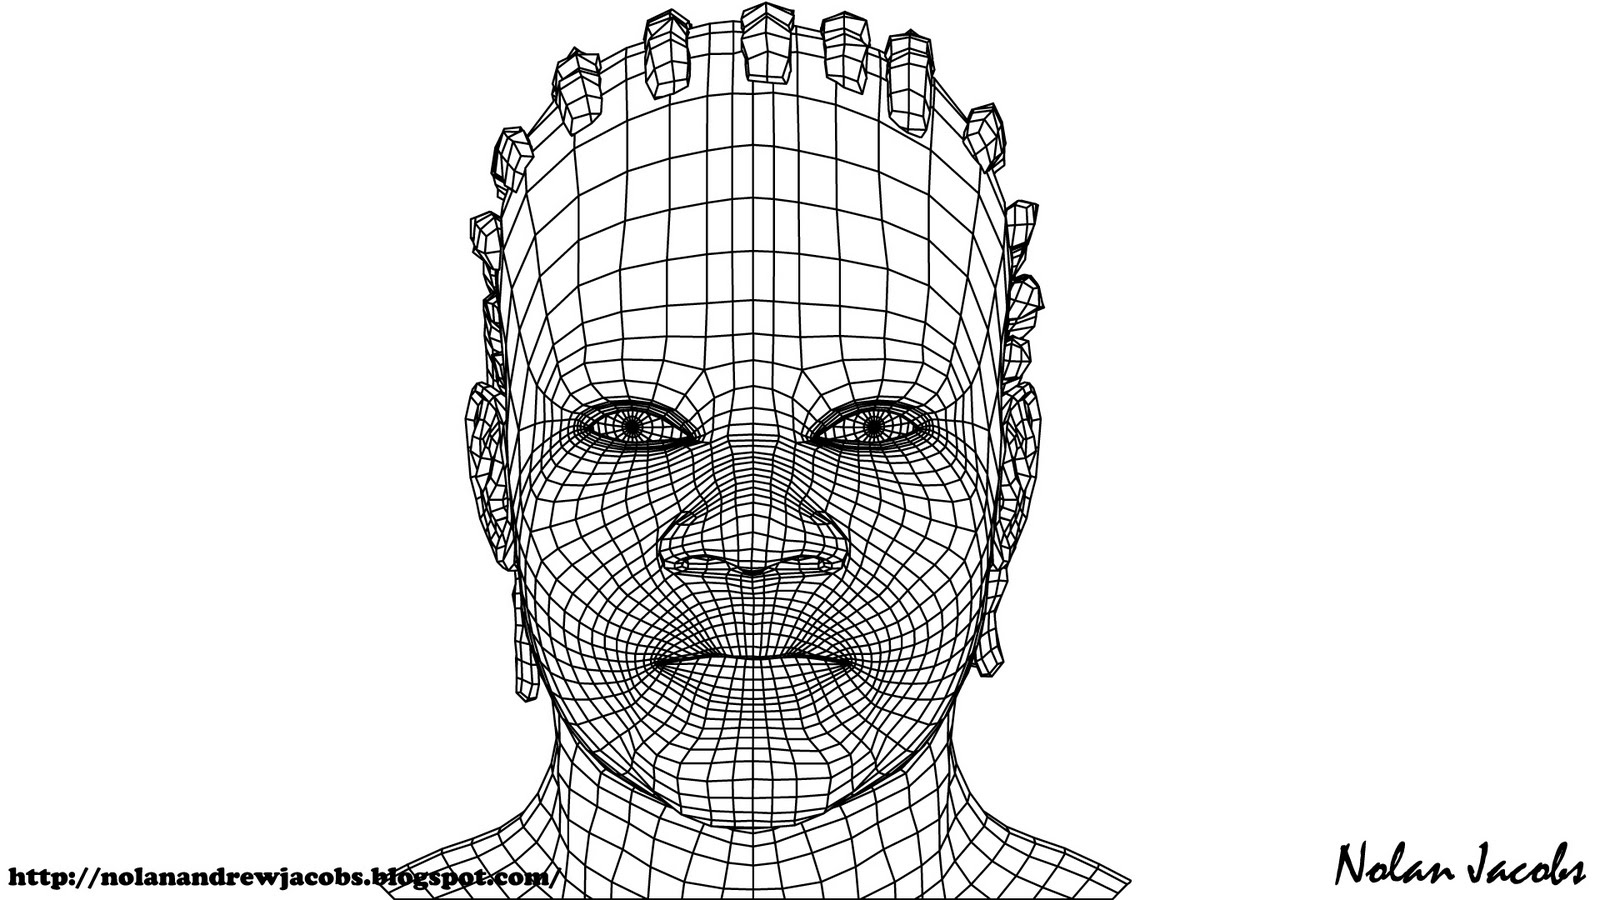 Nolan Jacobs Art Blog: #1 Male Head Modelled/ Wireframe